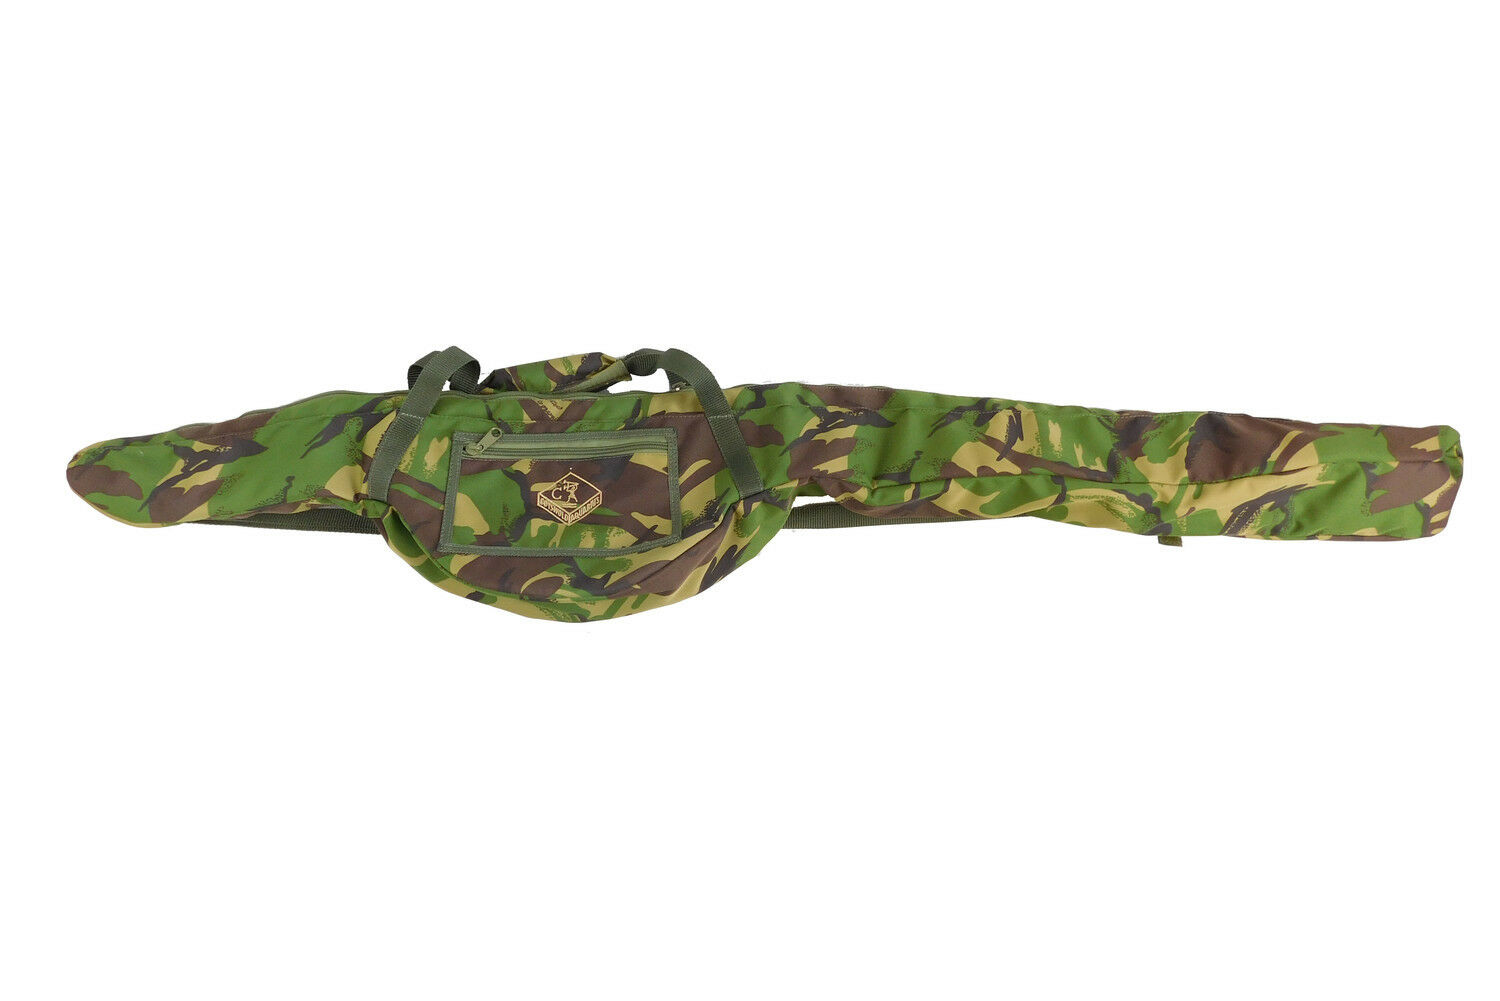 Cotswold Aquarius Woodland Camo 10ft 3 Fishing Rod Stalker Pouch 63